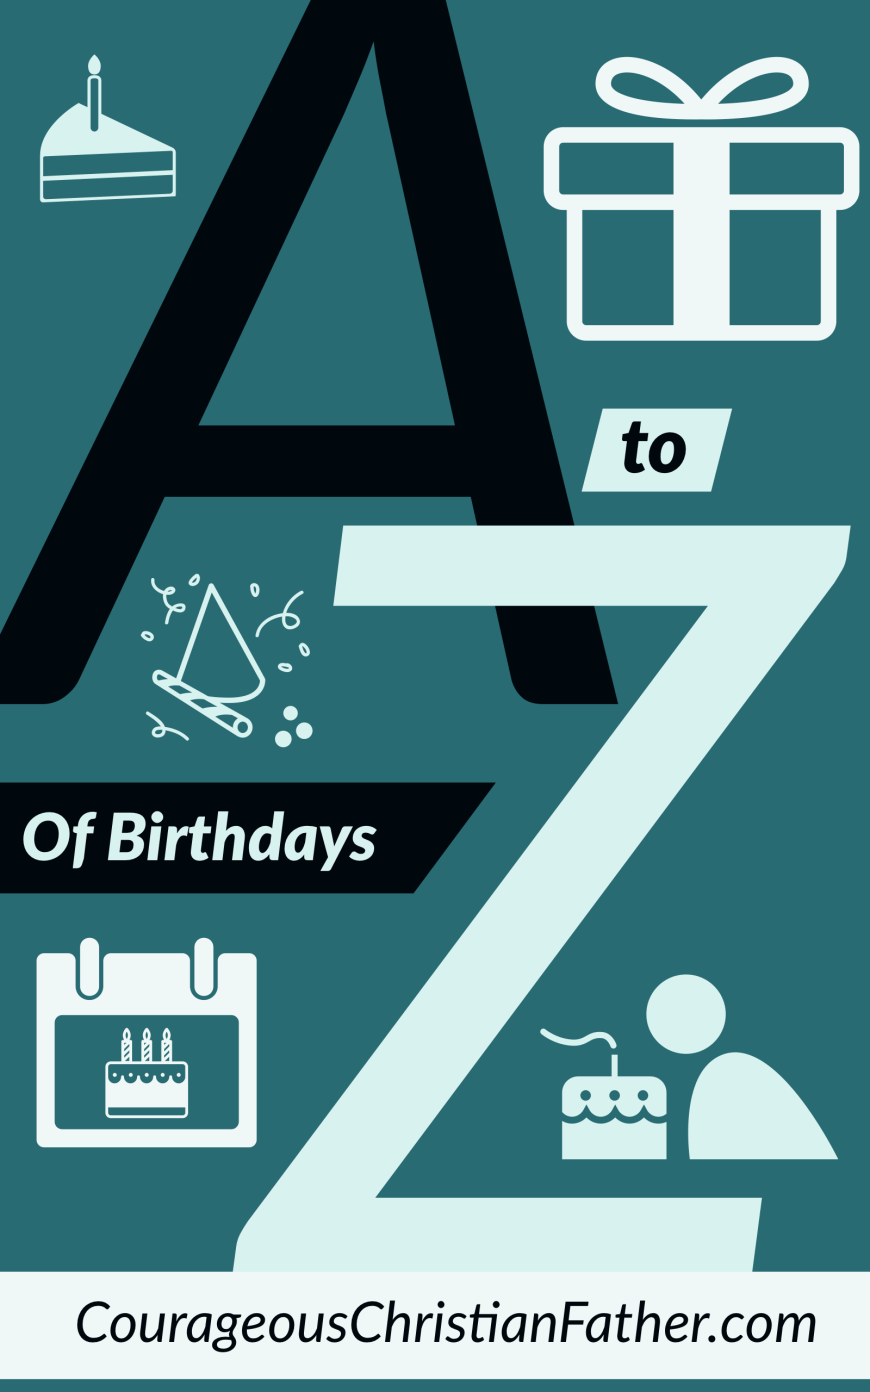 A-Z of Birthdays - Here is a list of things from A to Z about birthdays. #Birthday #Birthdays